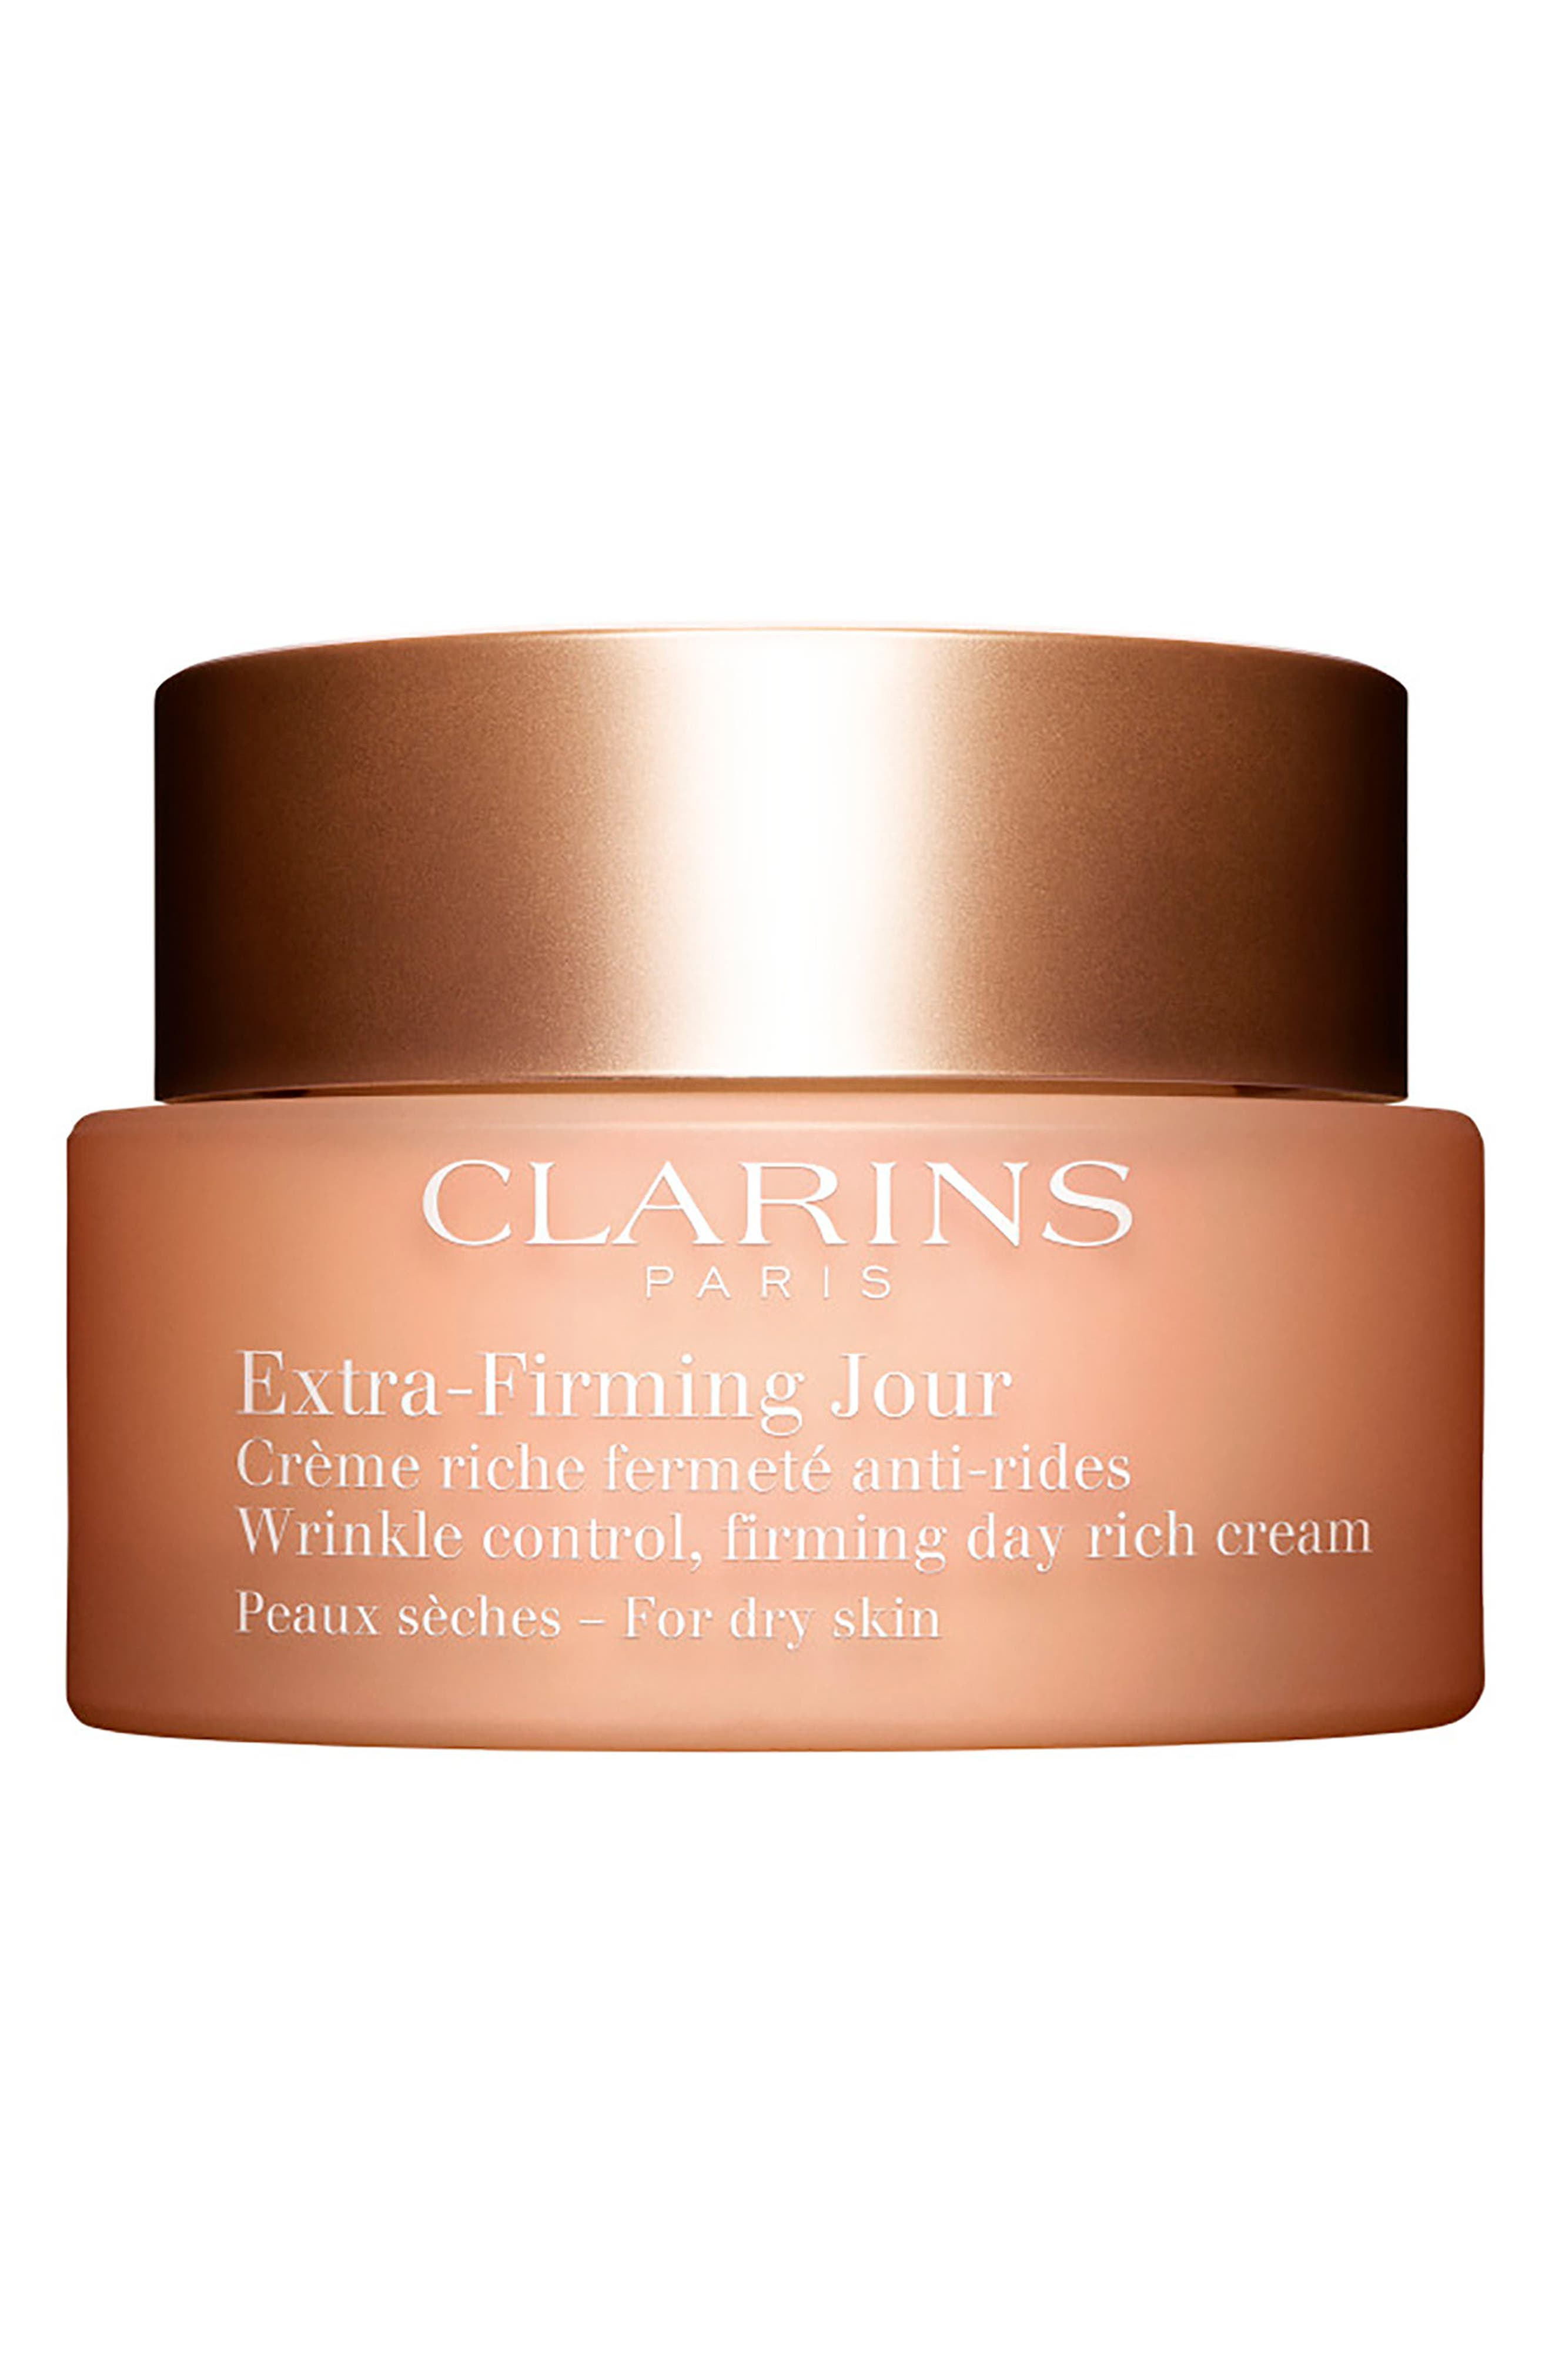 Extra-Firming Wrinkle Control Firming Day Cream for Dry Skin,                             Main thumbnail 1, color,                             No Color